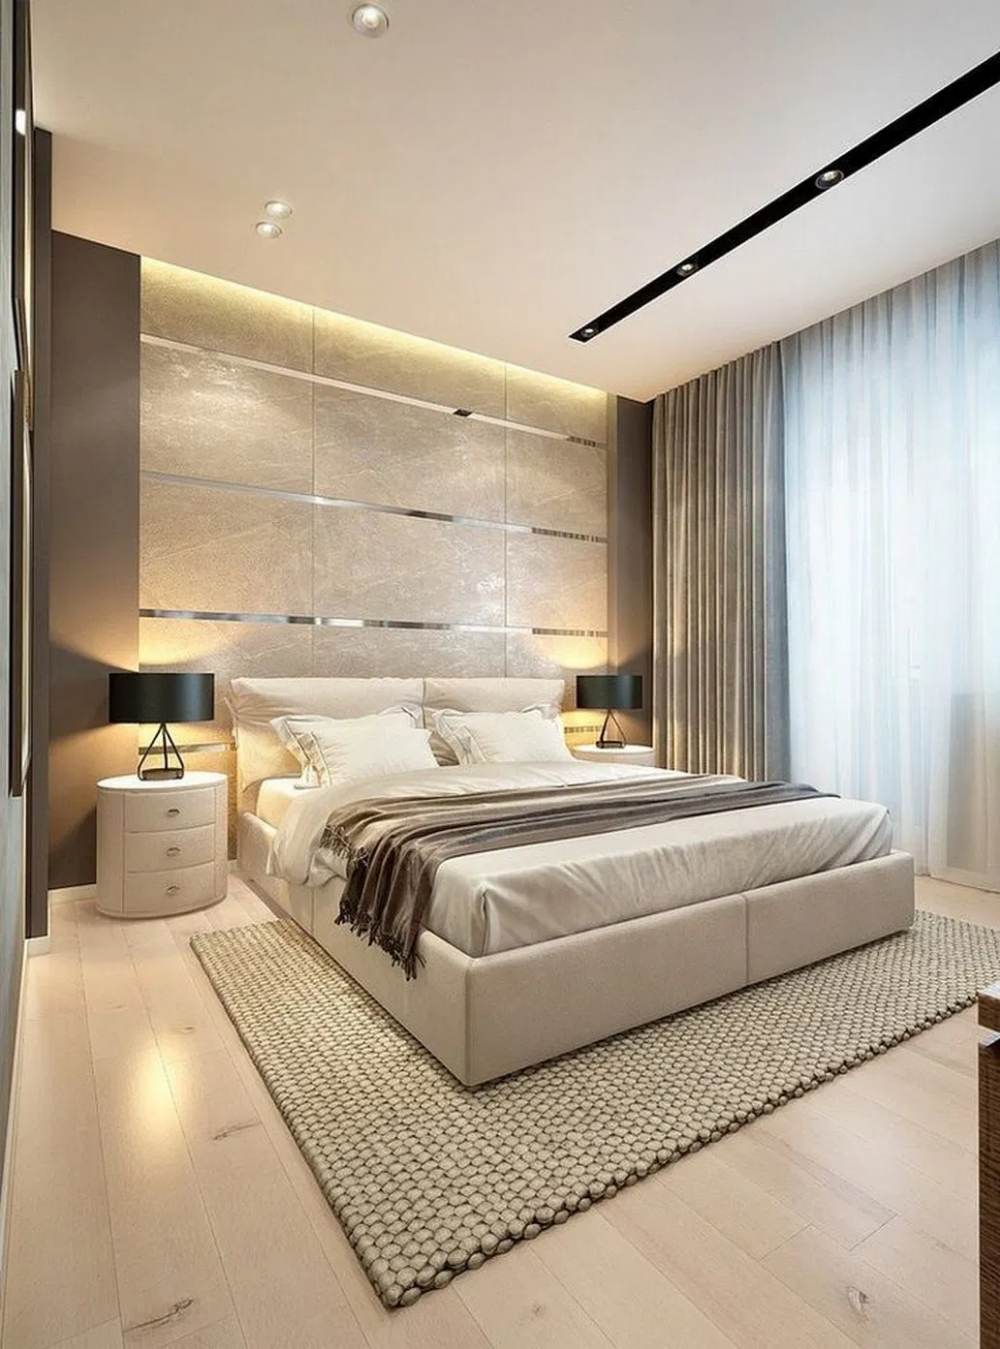 56 Cool And Fun Bedroom Tv Wall Design Ideas 1 In 2020